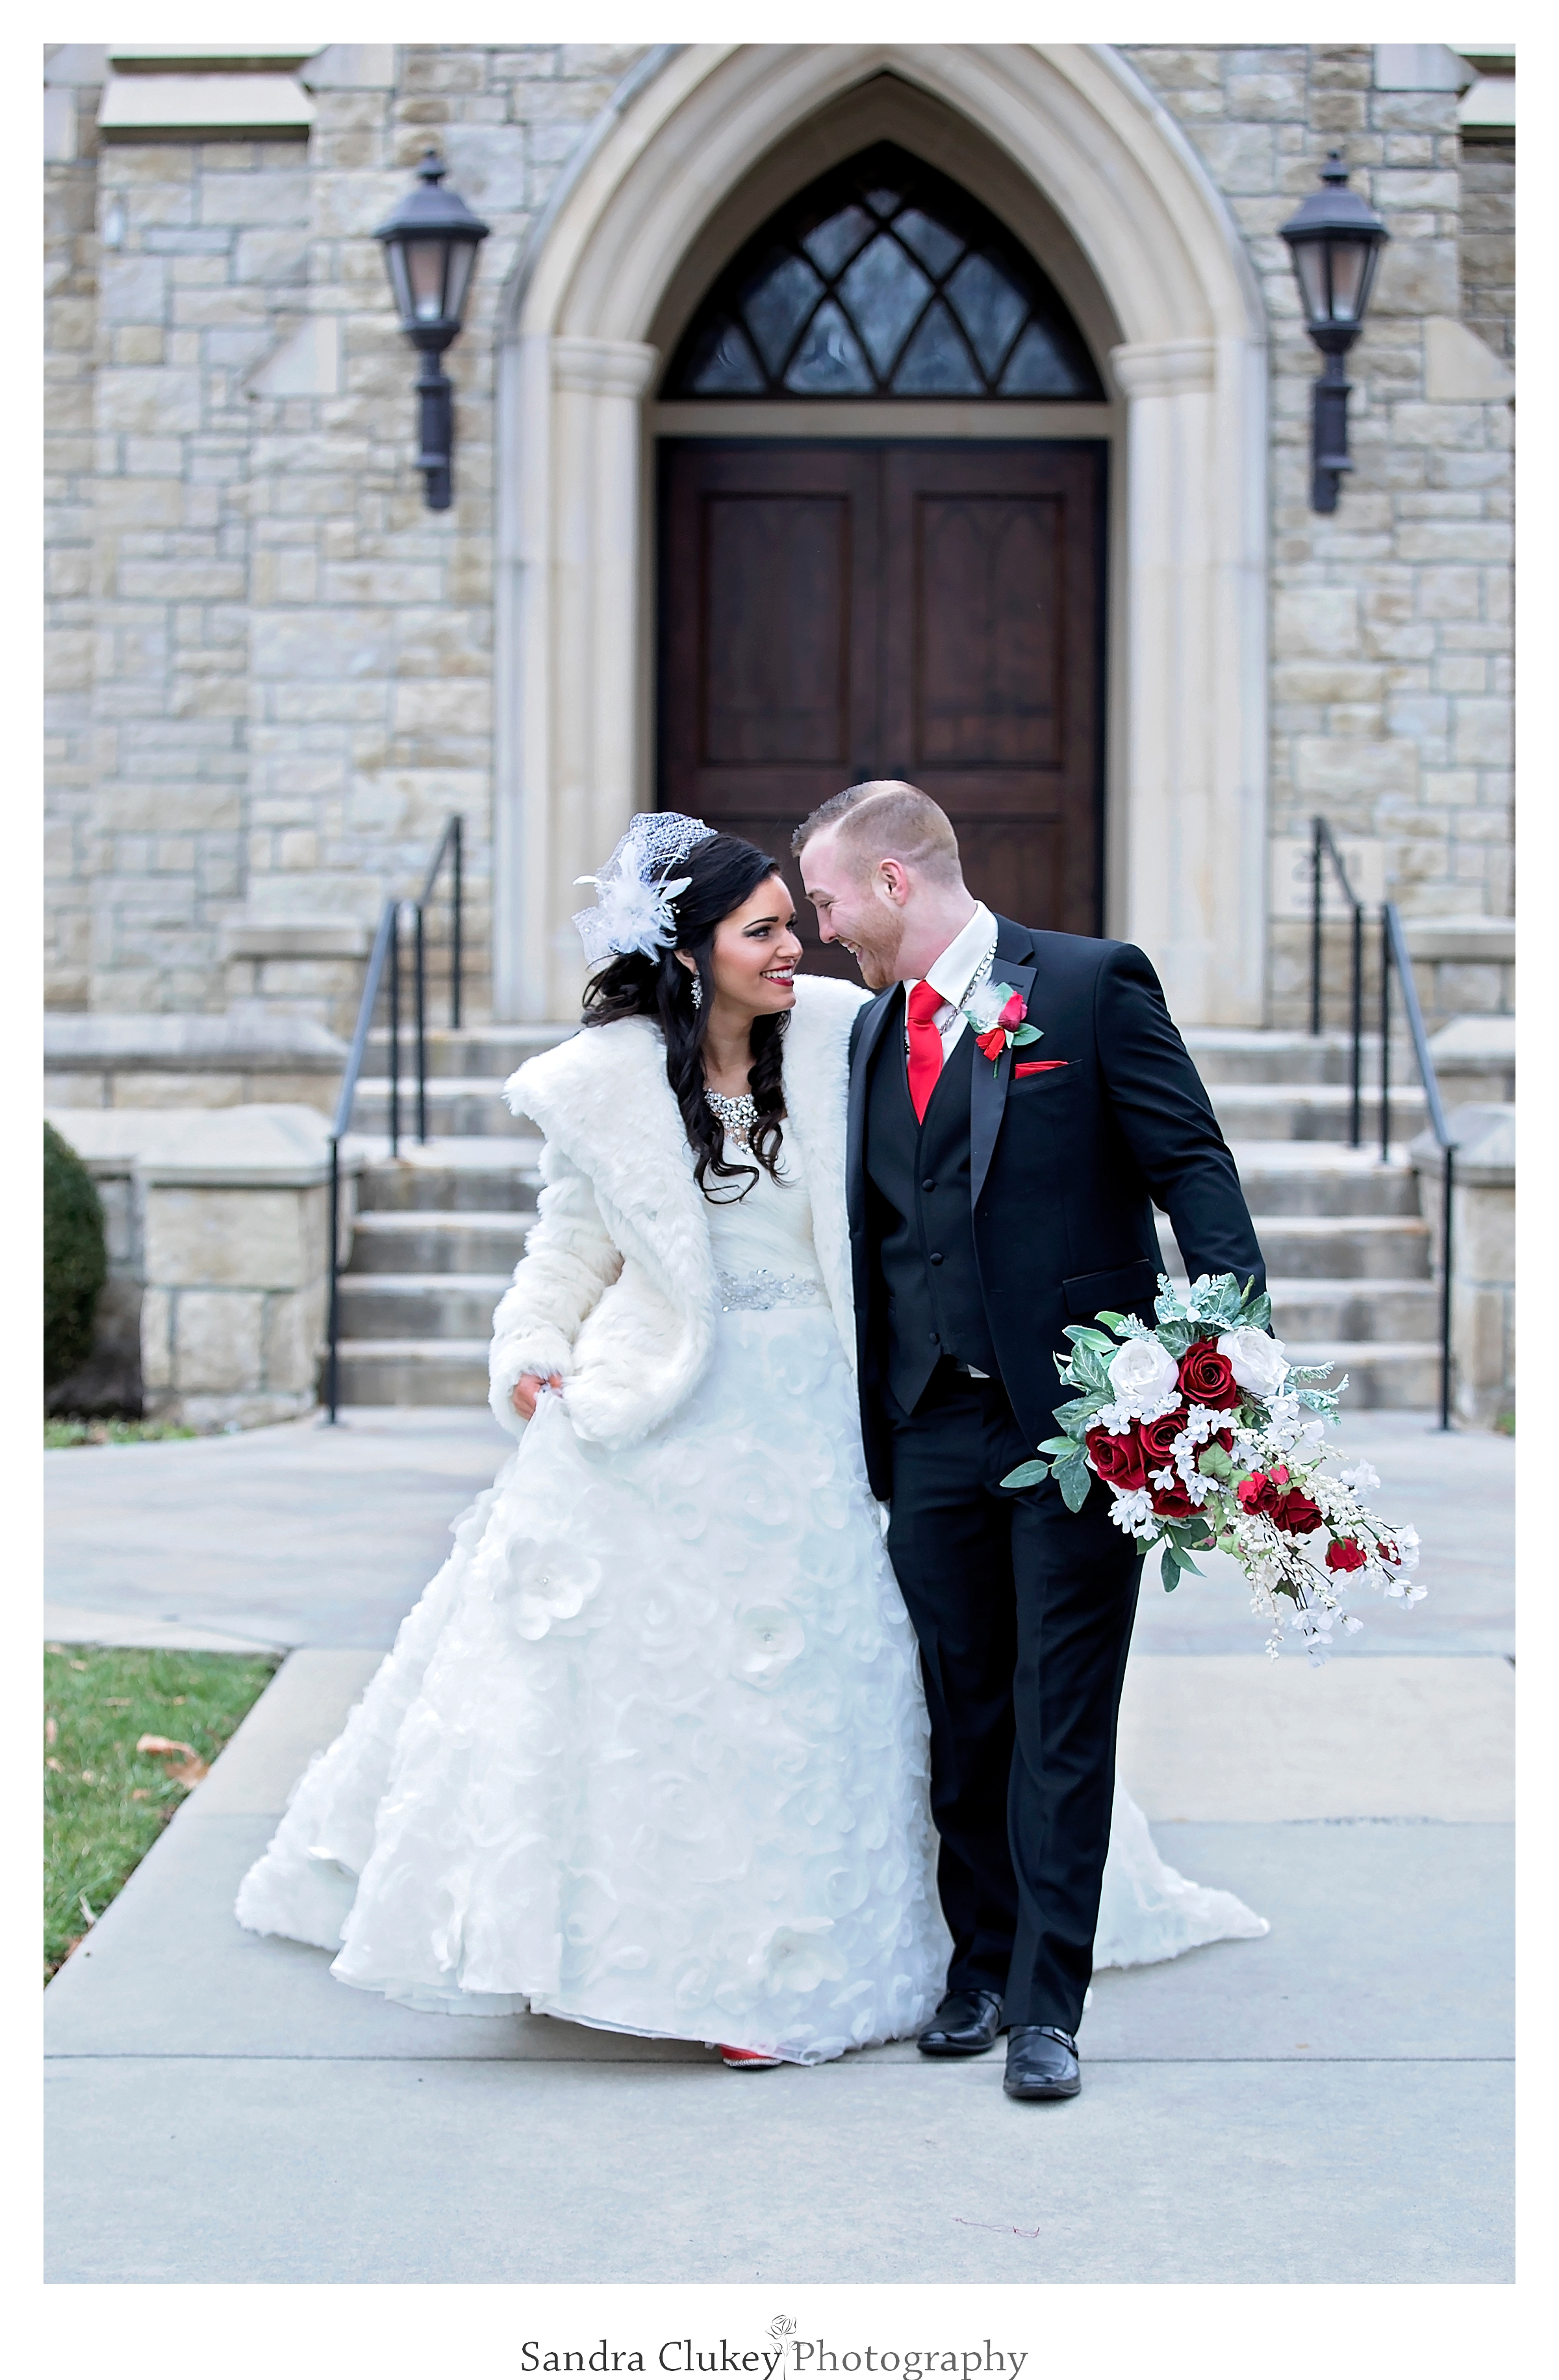 Love is in the air during Wedding at Lee University Chapel, Cleveland TN